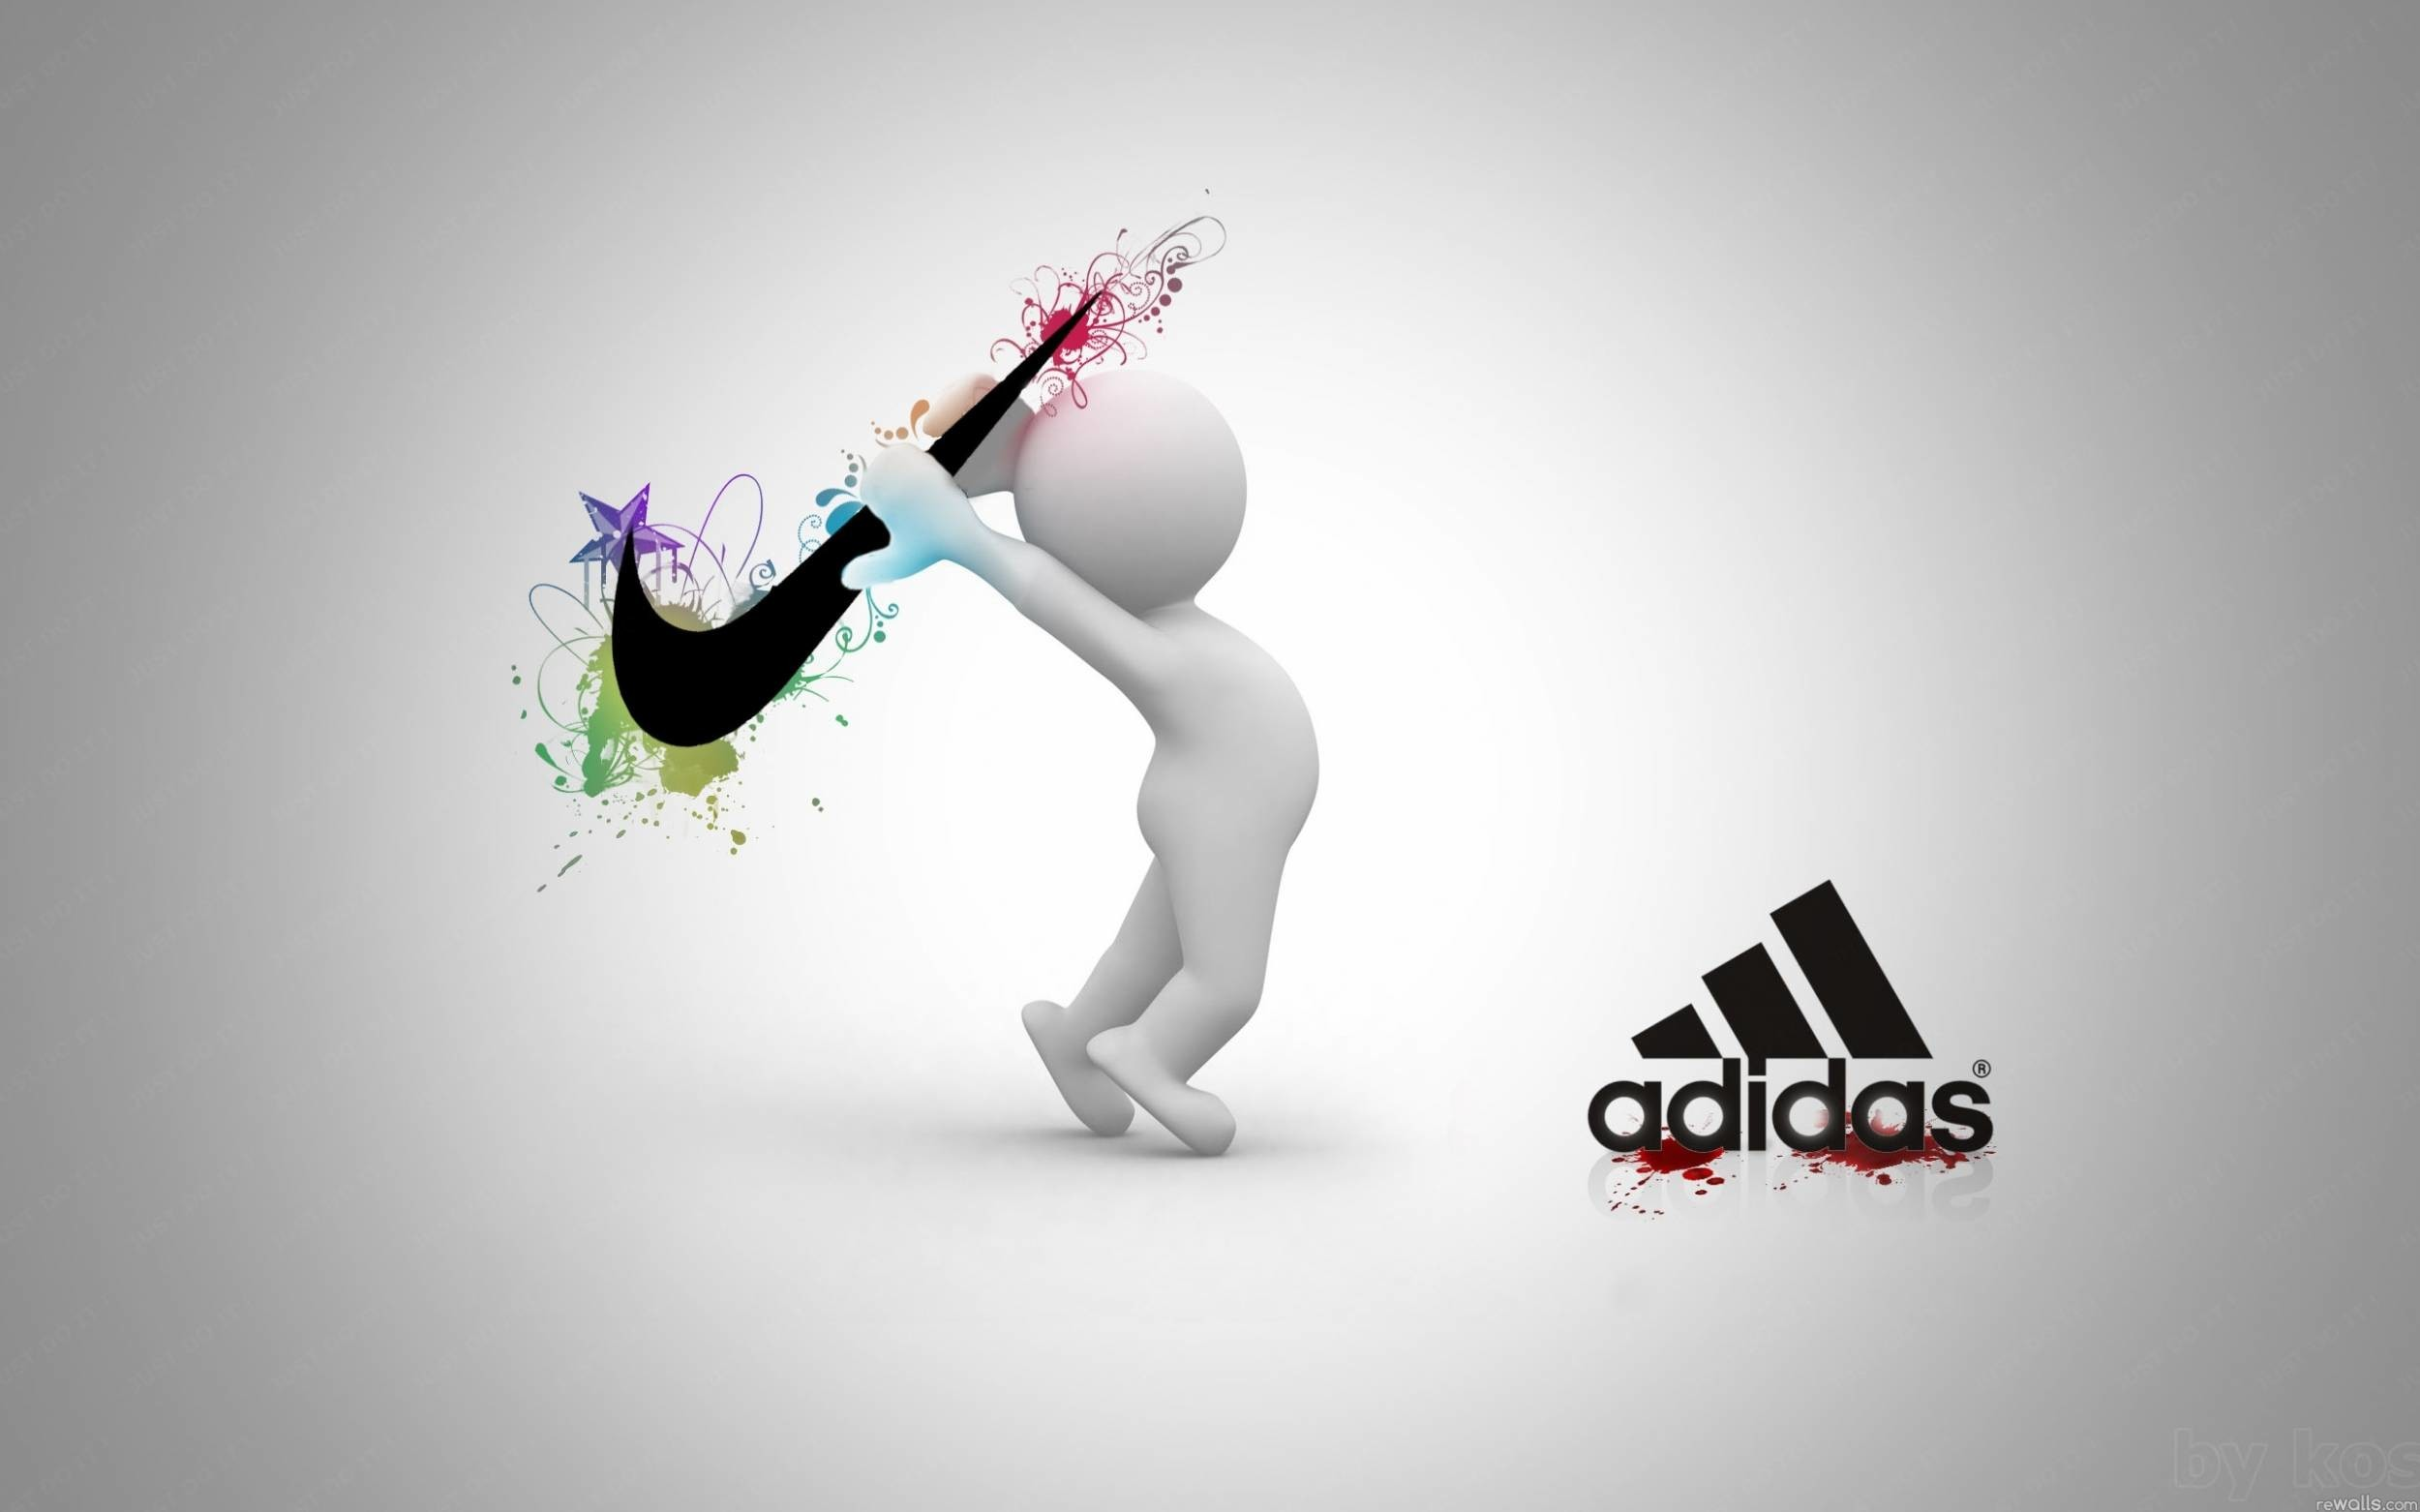 Res: 2500x1562, Nike Logo, Desktop Screen Backgrounds, Wallpapers and Pictures for PC &  Mac, Tablet, Laptop, Mobile